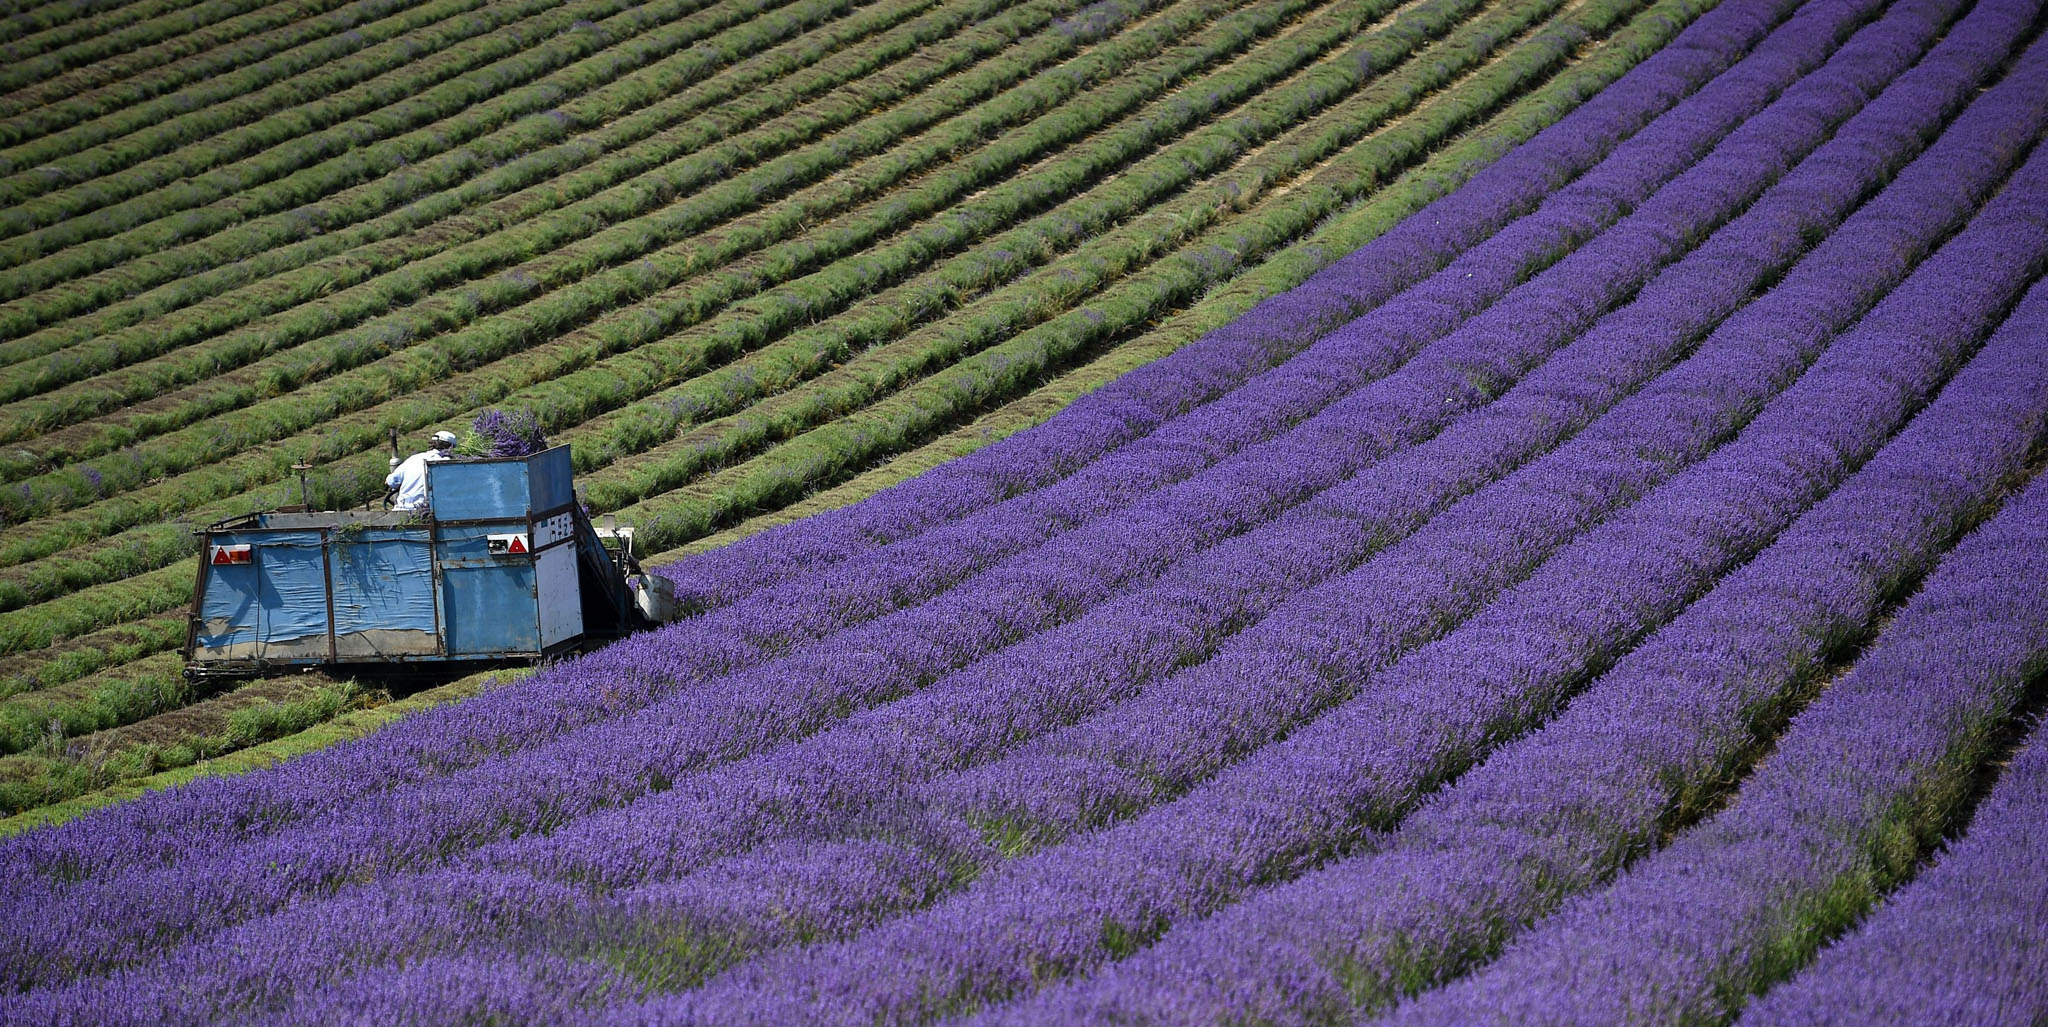 A tractor makes it's way up a row of lavender as it is harvested on the Lordington Lavender farm in West Sussex